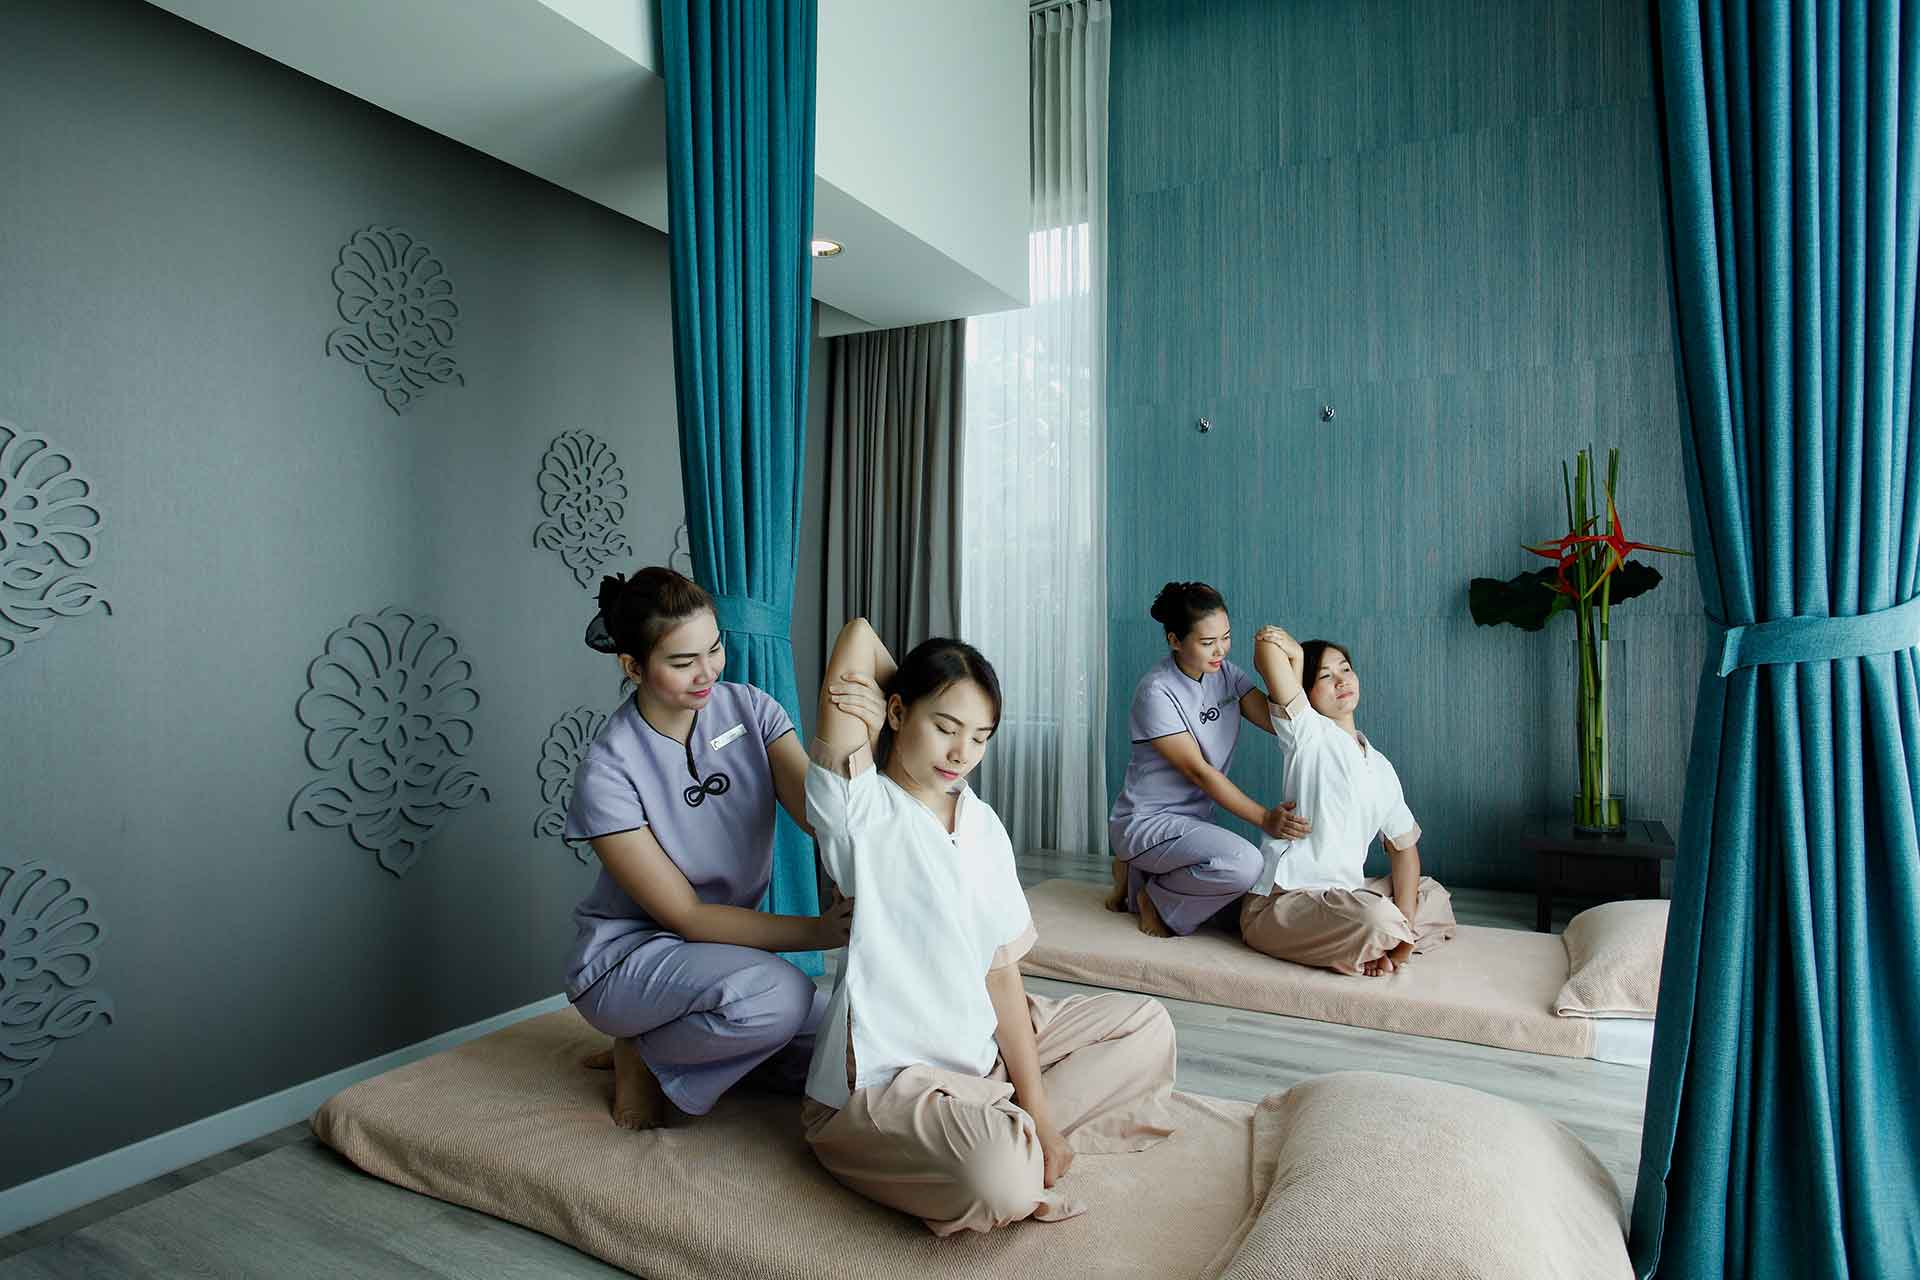 Spa therapists at AVANI Khon Kaen Hotel